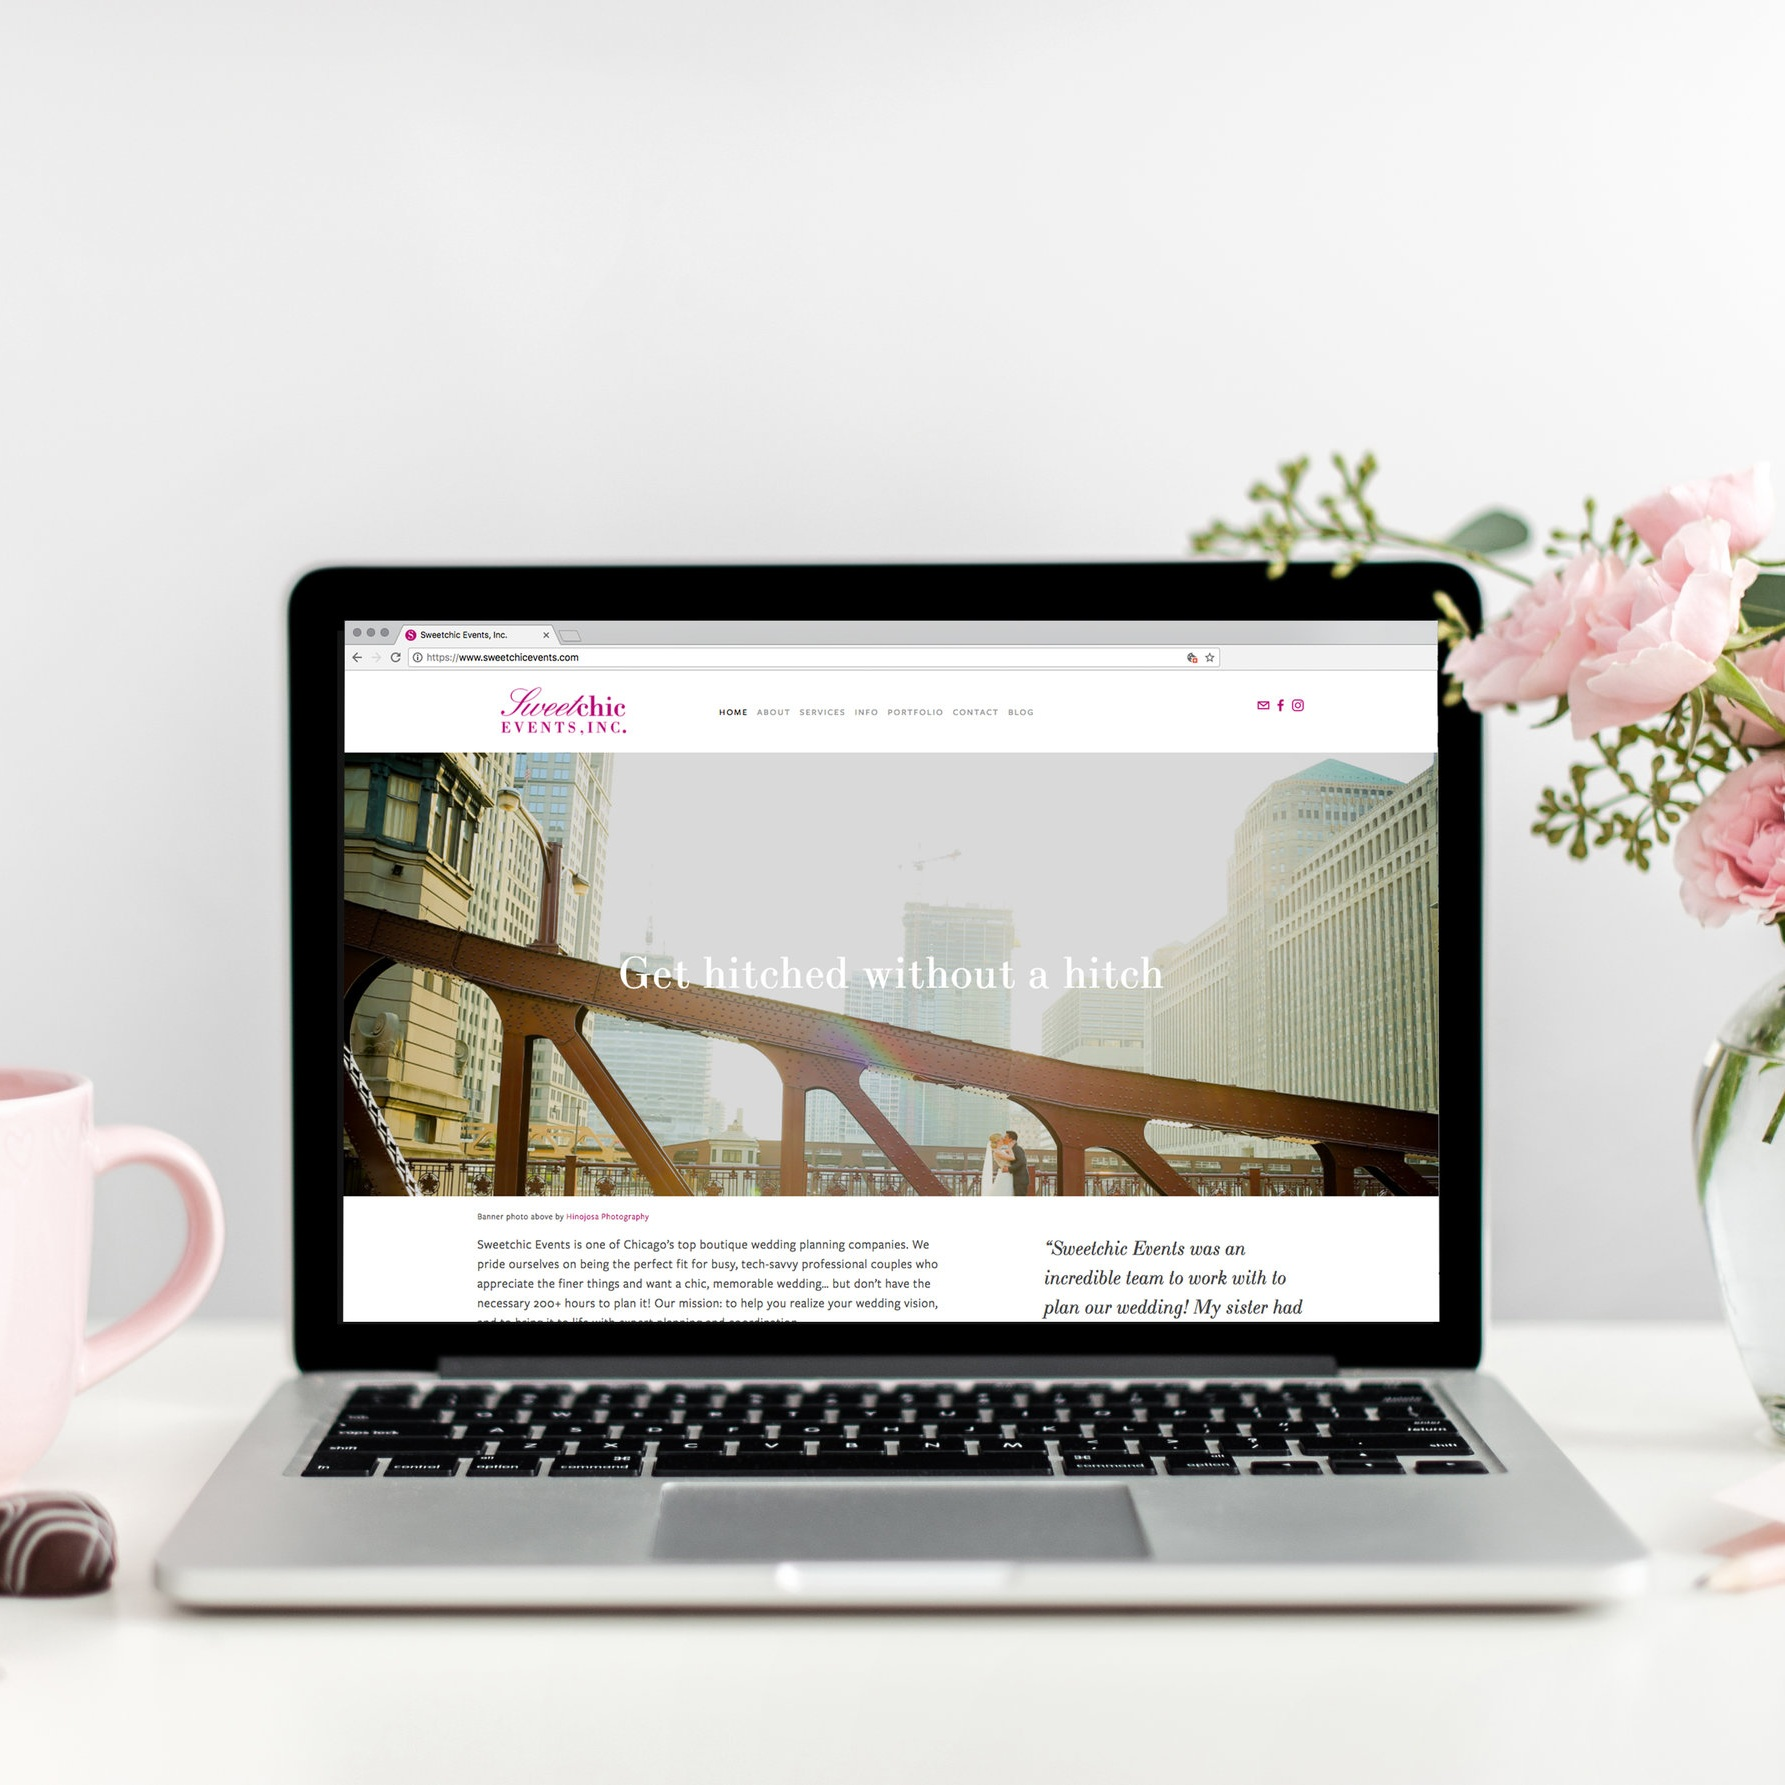 Sweetchic Events - Web design, UI, UX